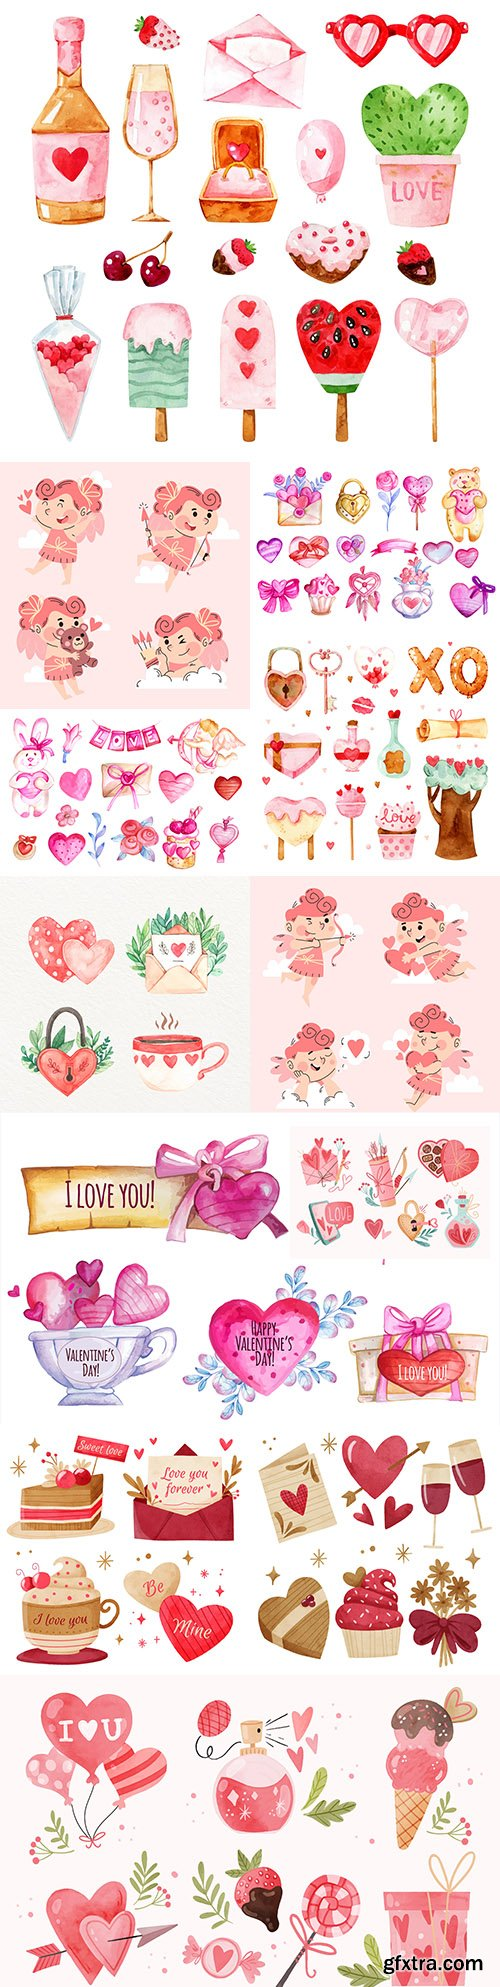 St. Valentine's day romantic watercolor illustrations collection 6